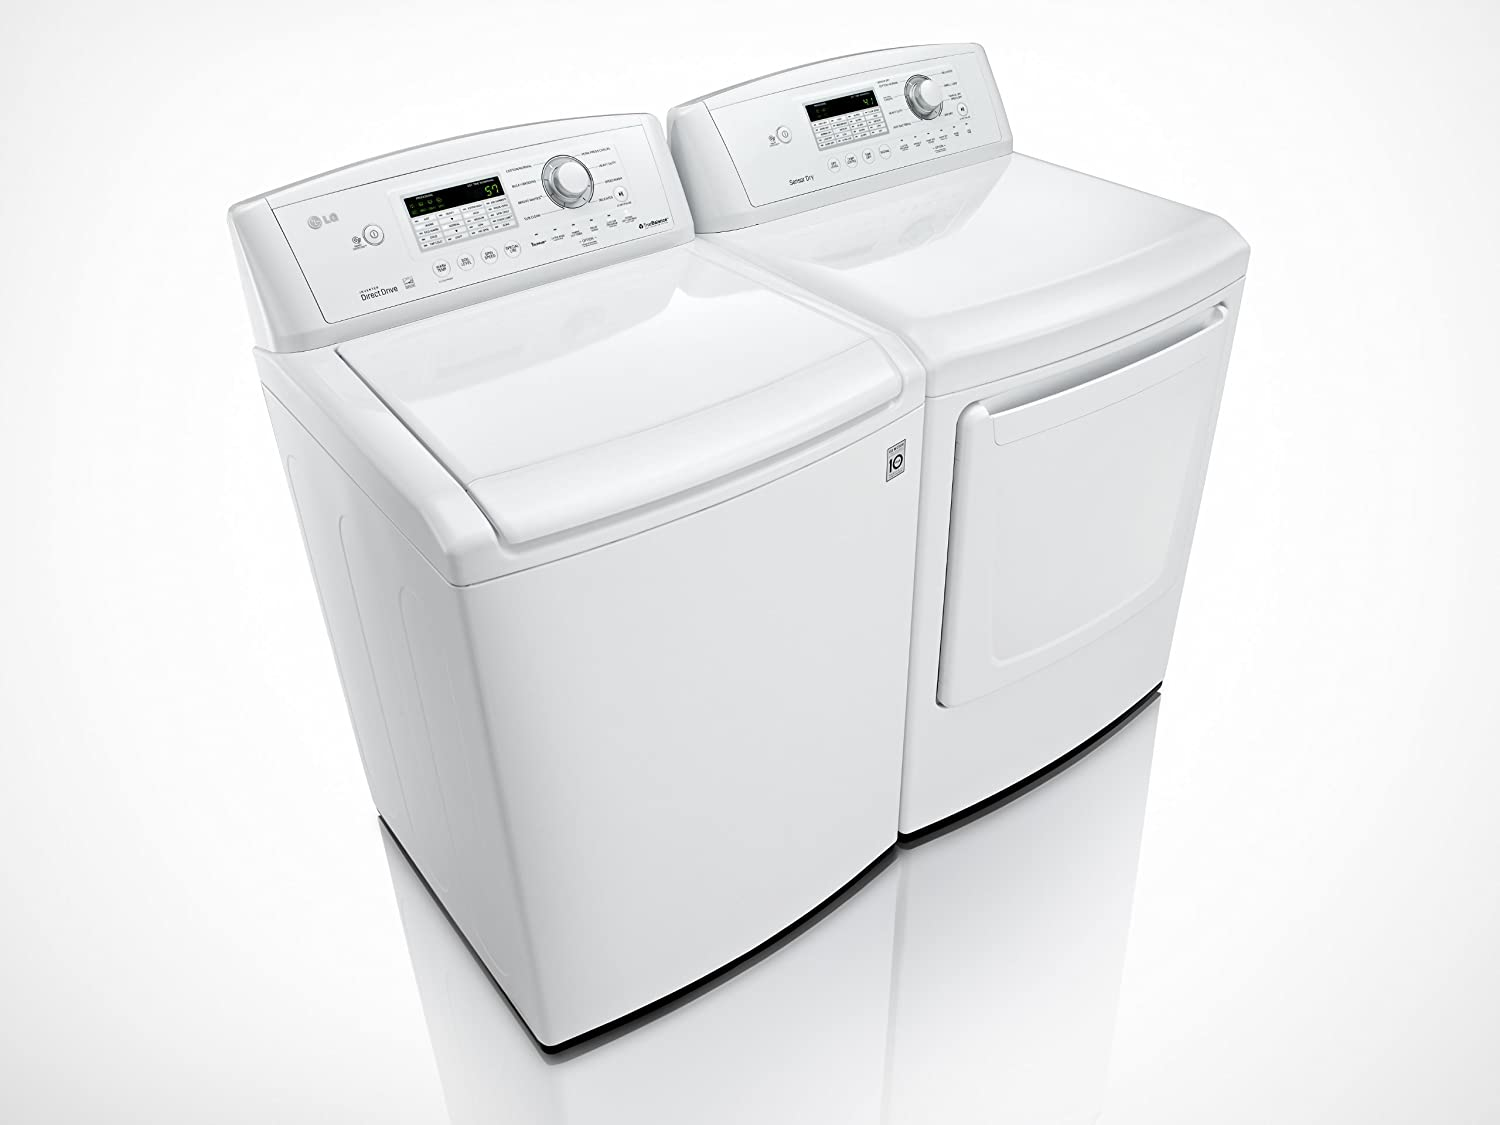 Lg all in one washer and dryer reviews - Amazon Com Lg H E Super Capacity H E Top Load Laundry Pair With Powerful Staincare Technology Wt4870cw Dle4870w Electric Dryer Appliances